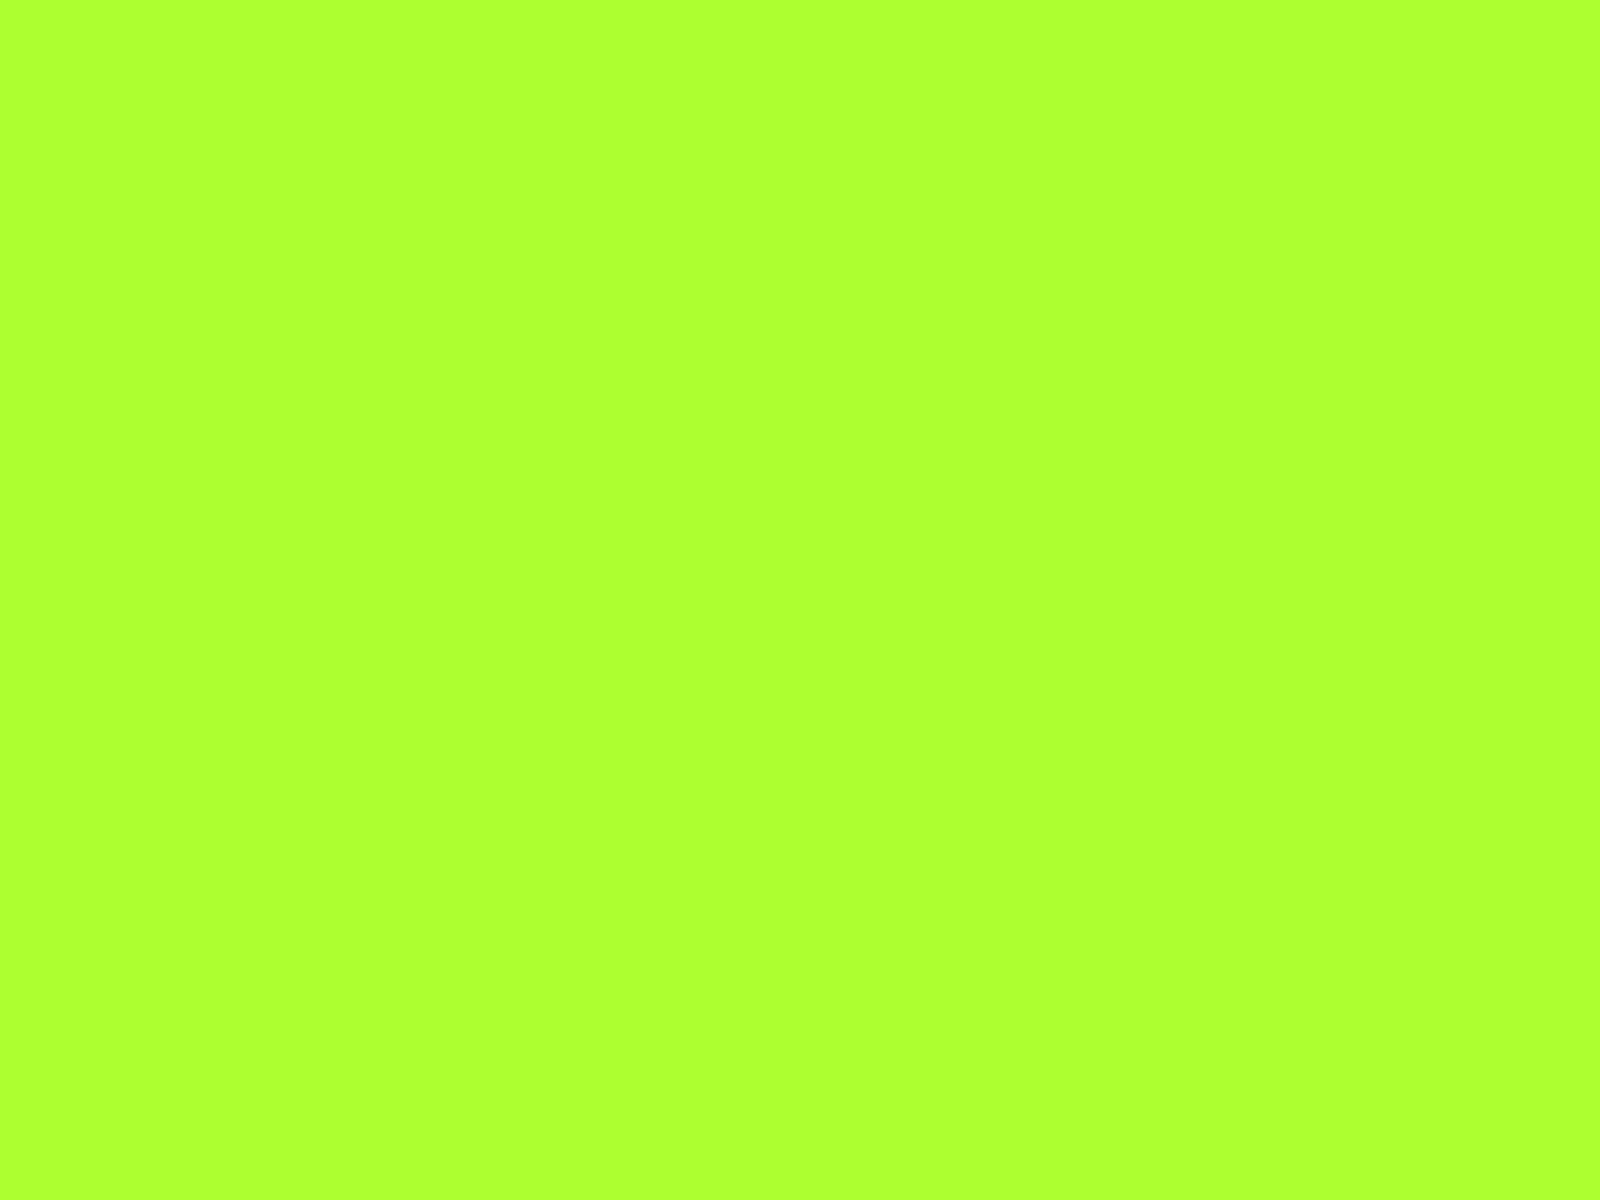 1600x1200 Green-yellow Solid Color Background